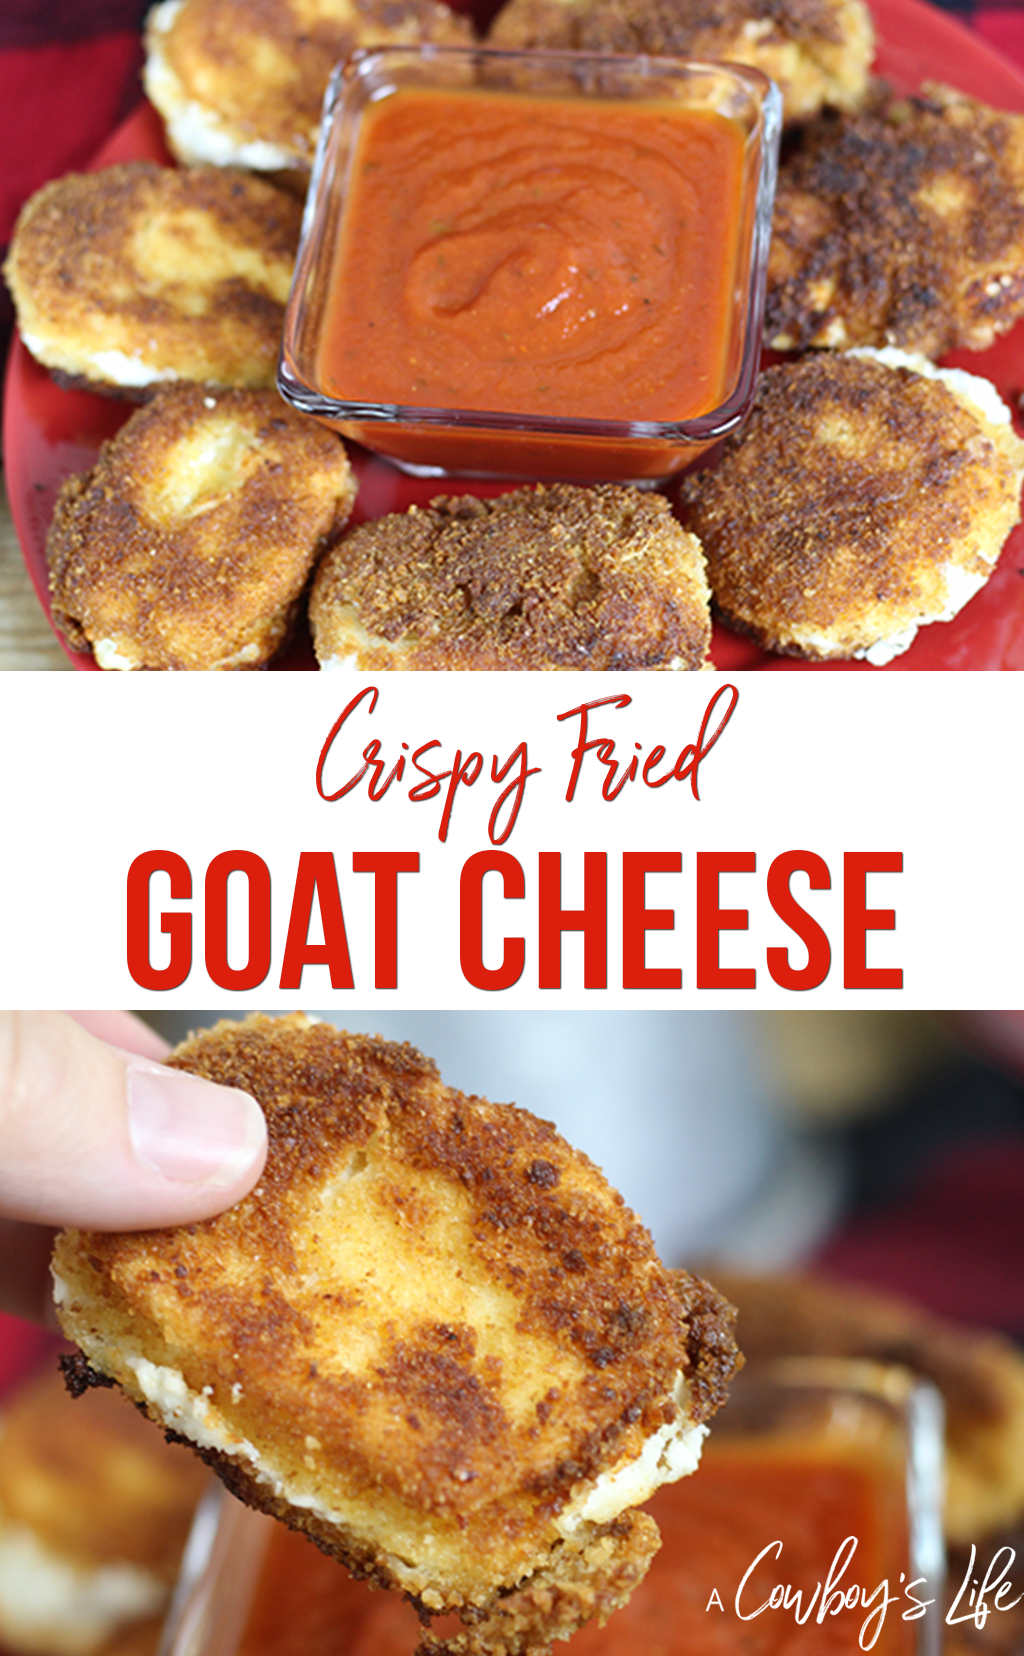 Crispy Fried Goat Cheese